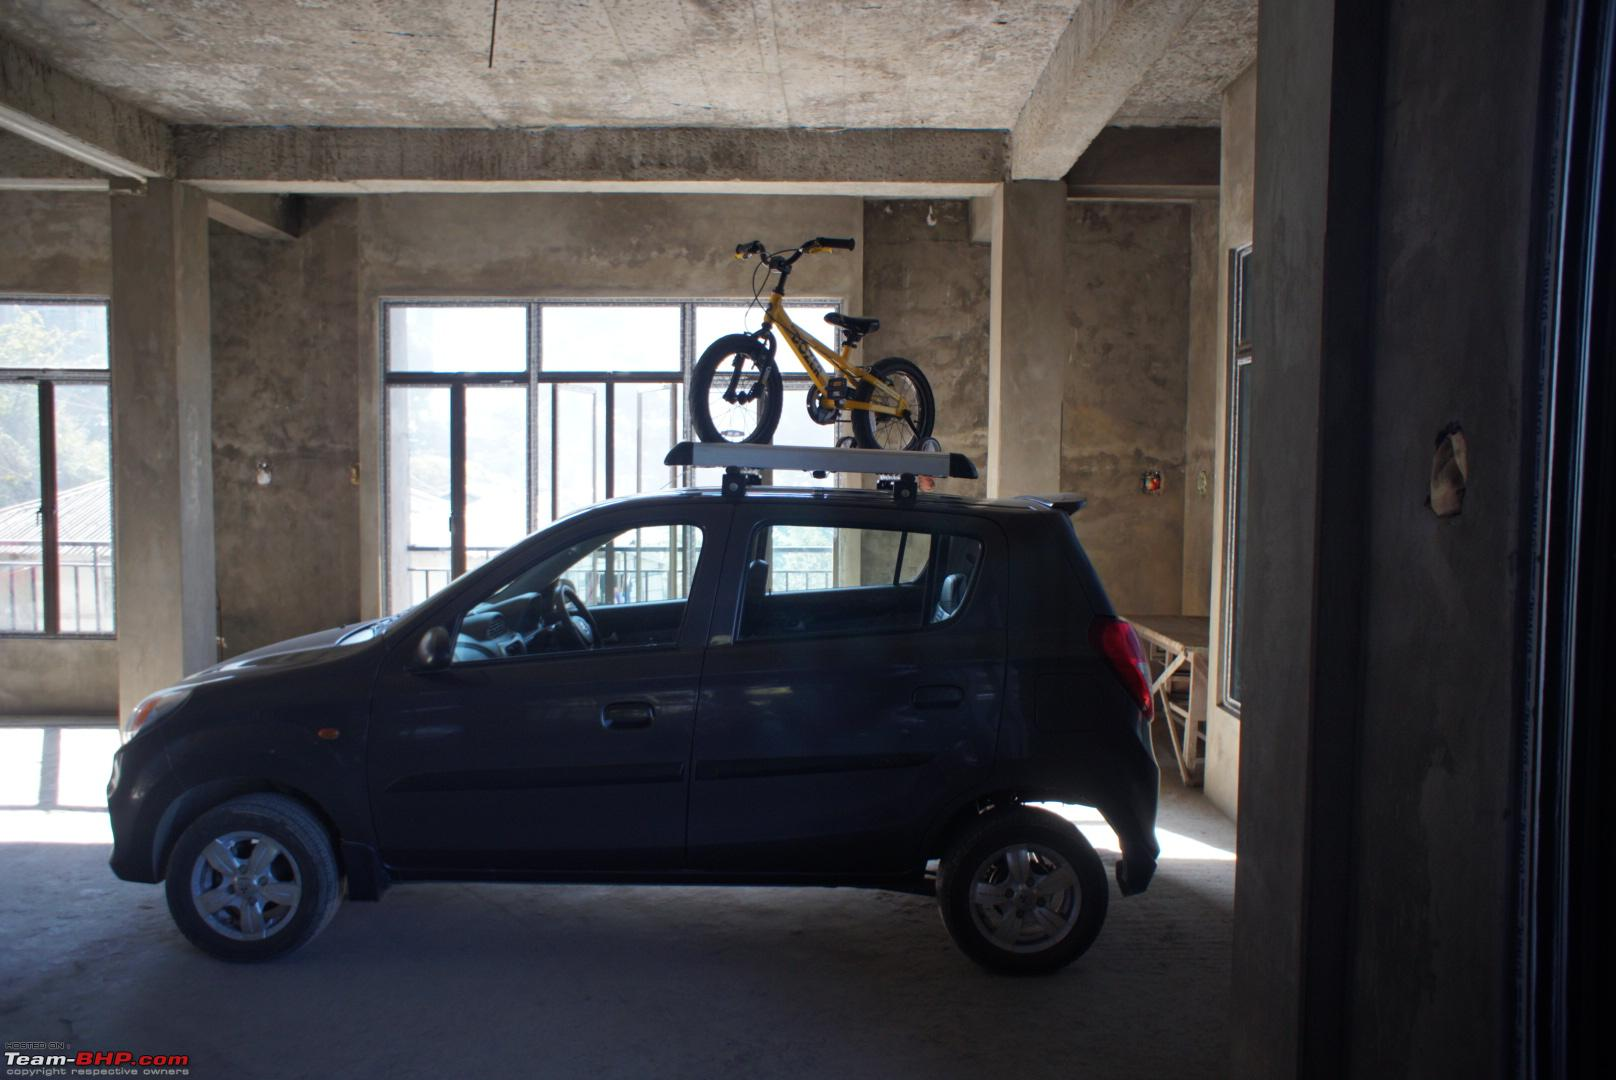 Questions About Roof Racks Carriers Bicycle Carriers